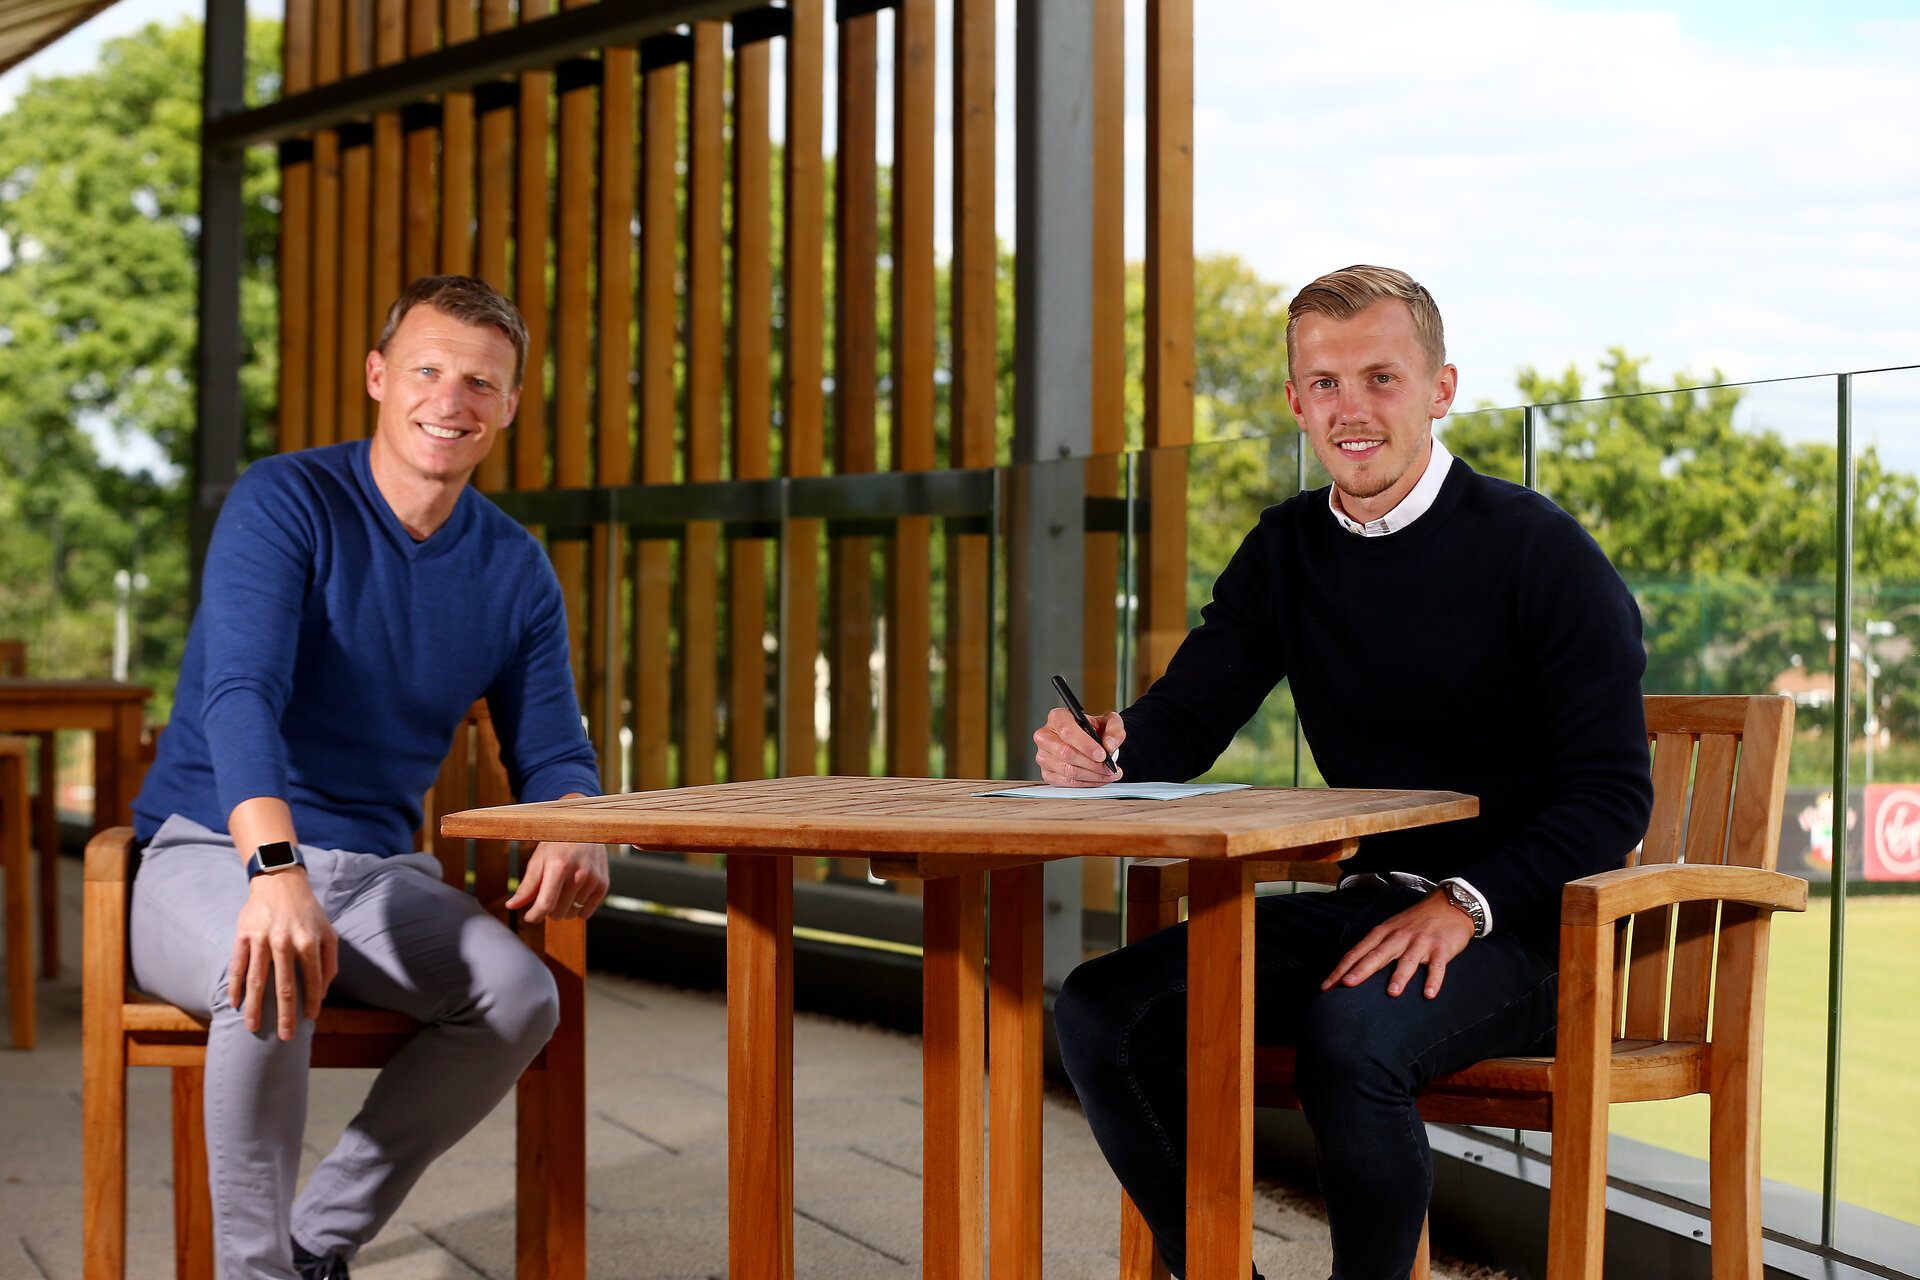 SOUTHAMPTON, ENGLAND - JULY 28: James Ward-Prowse(R) signs a new 5 year contract with Southampton FC, pictured with Matt Crocker(L) at the Staplewood Campus on July 28, 2020 in Southampton, England. (Photo by Matt Watson/Southampton FC via Getty Images)